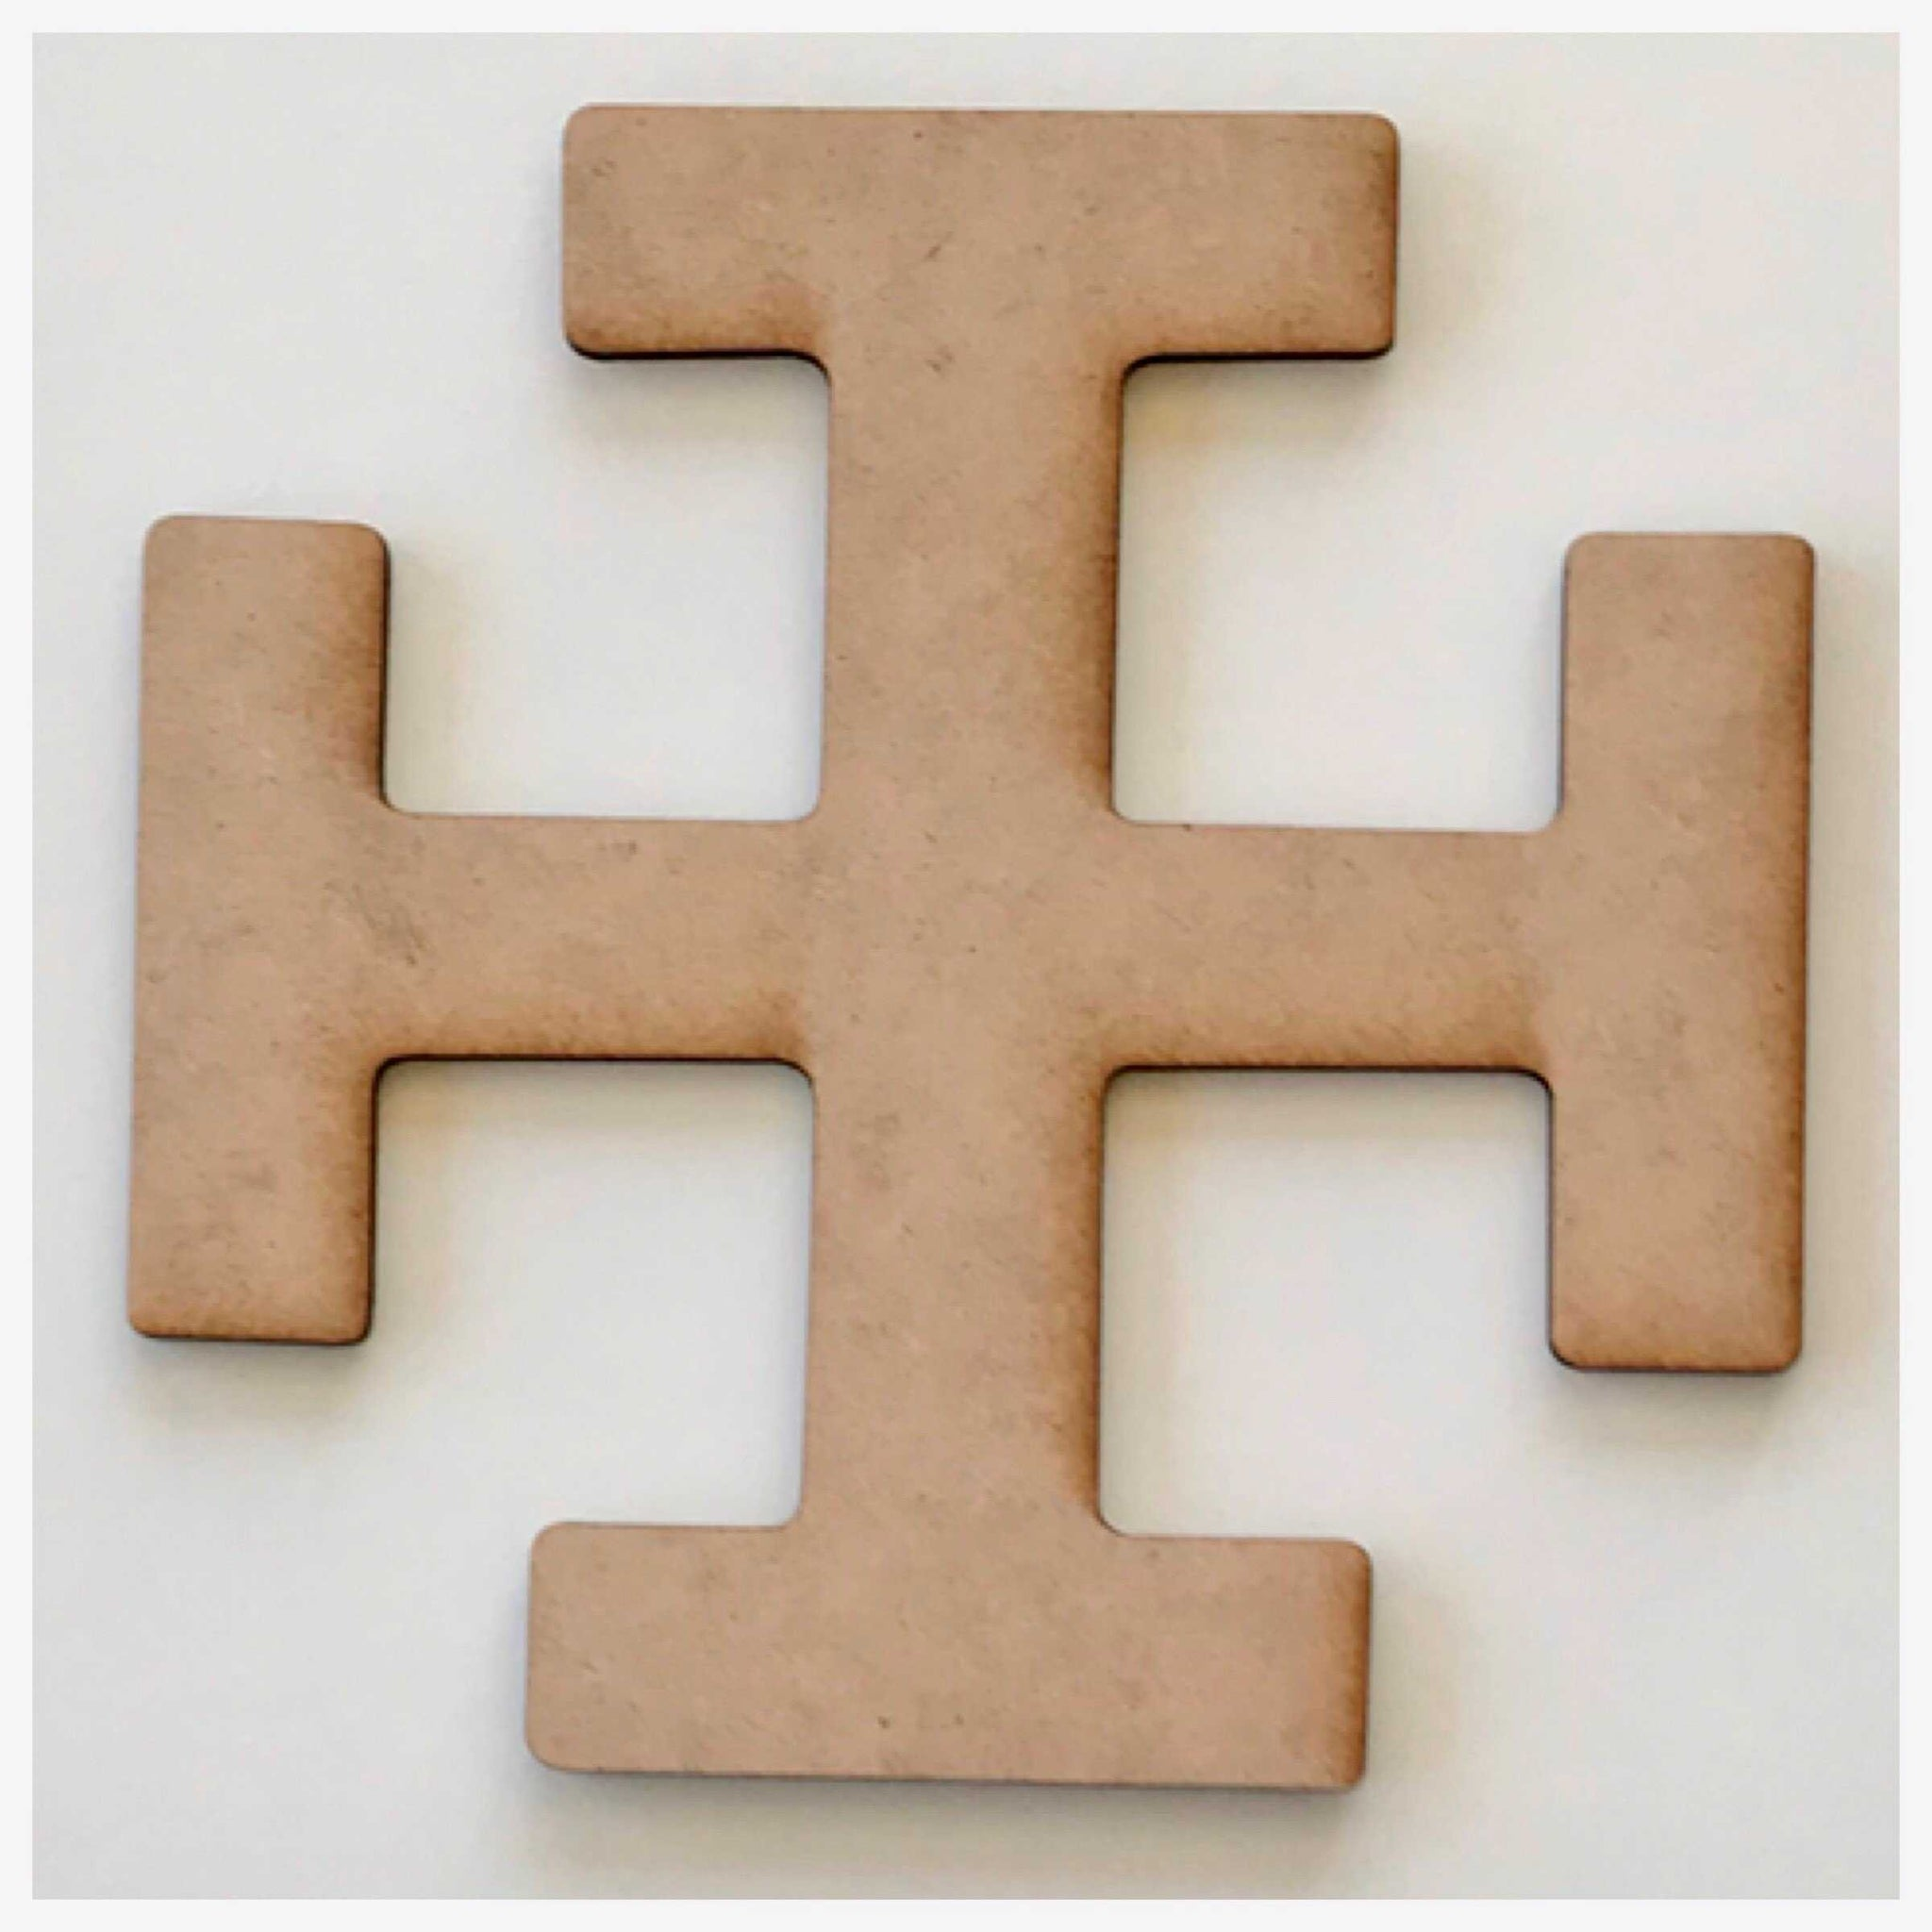 Cross with Intersections MDF Shape DIY Raw Cut Out Art Religious Craft Decor - The Renmy Store